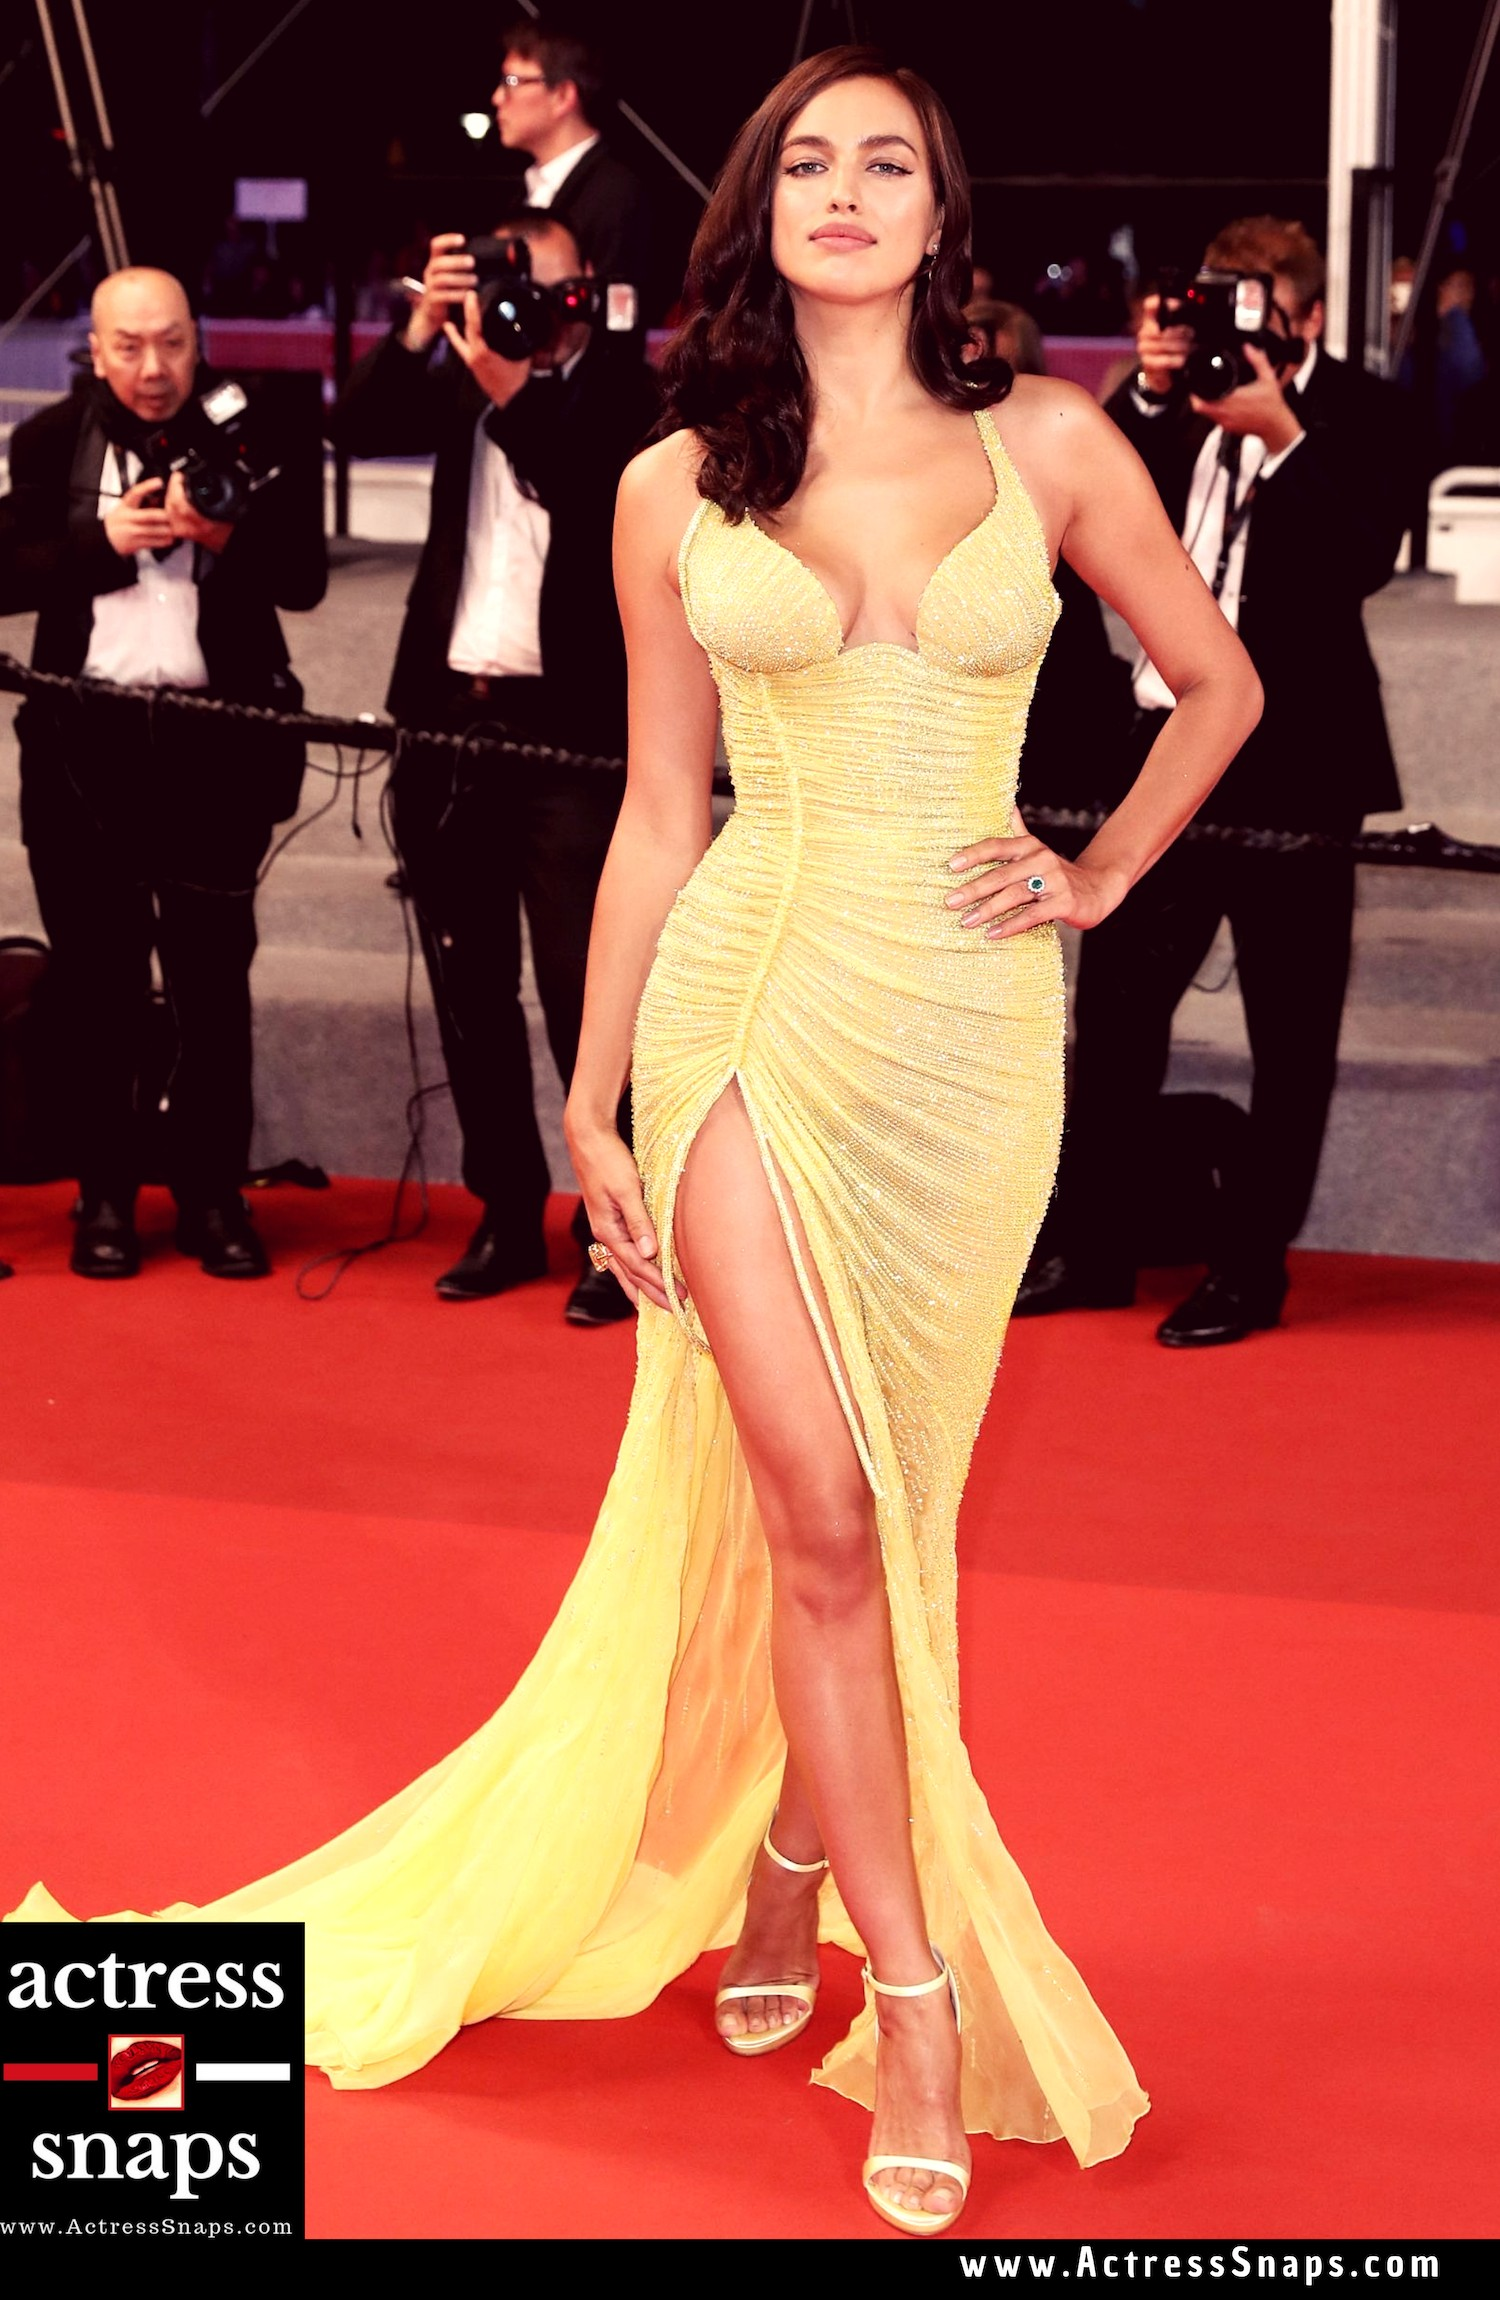 Irina Shayk - Sexy at the CANNES Festival - Sexy Actress Pictures | Hot Actress Pictures - ActressSnaps.com